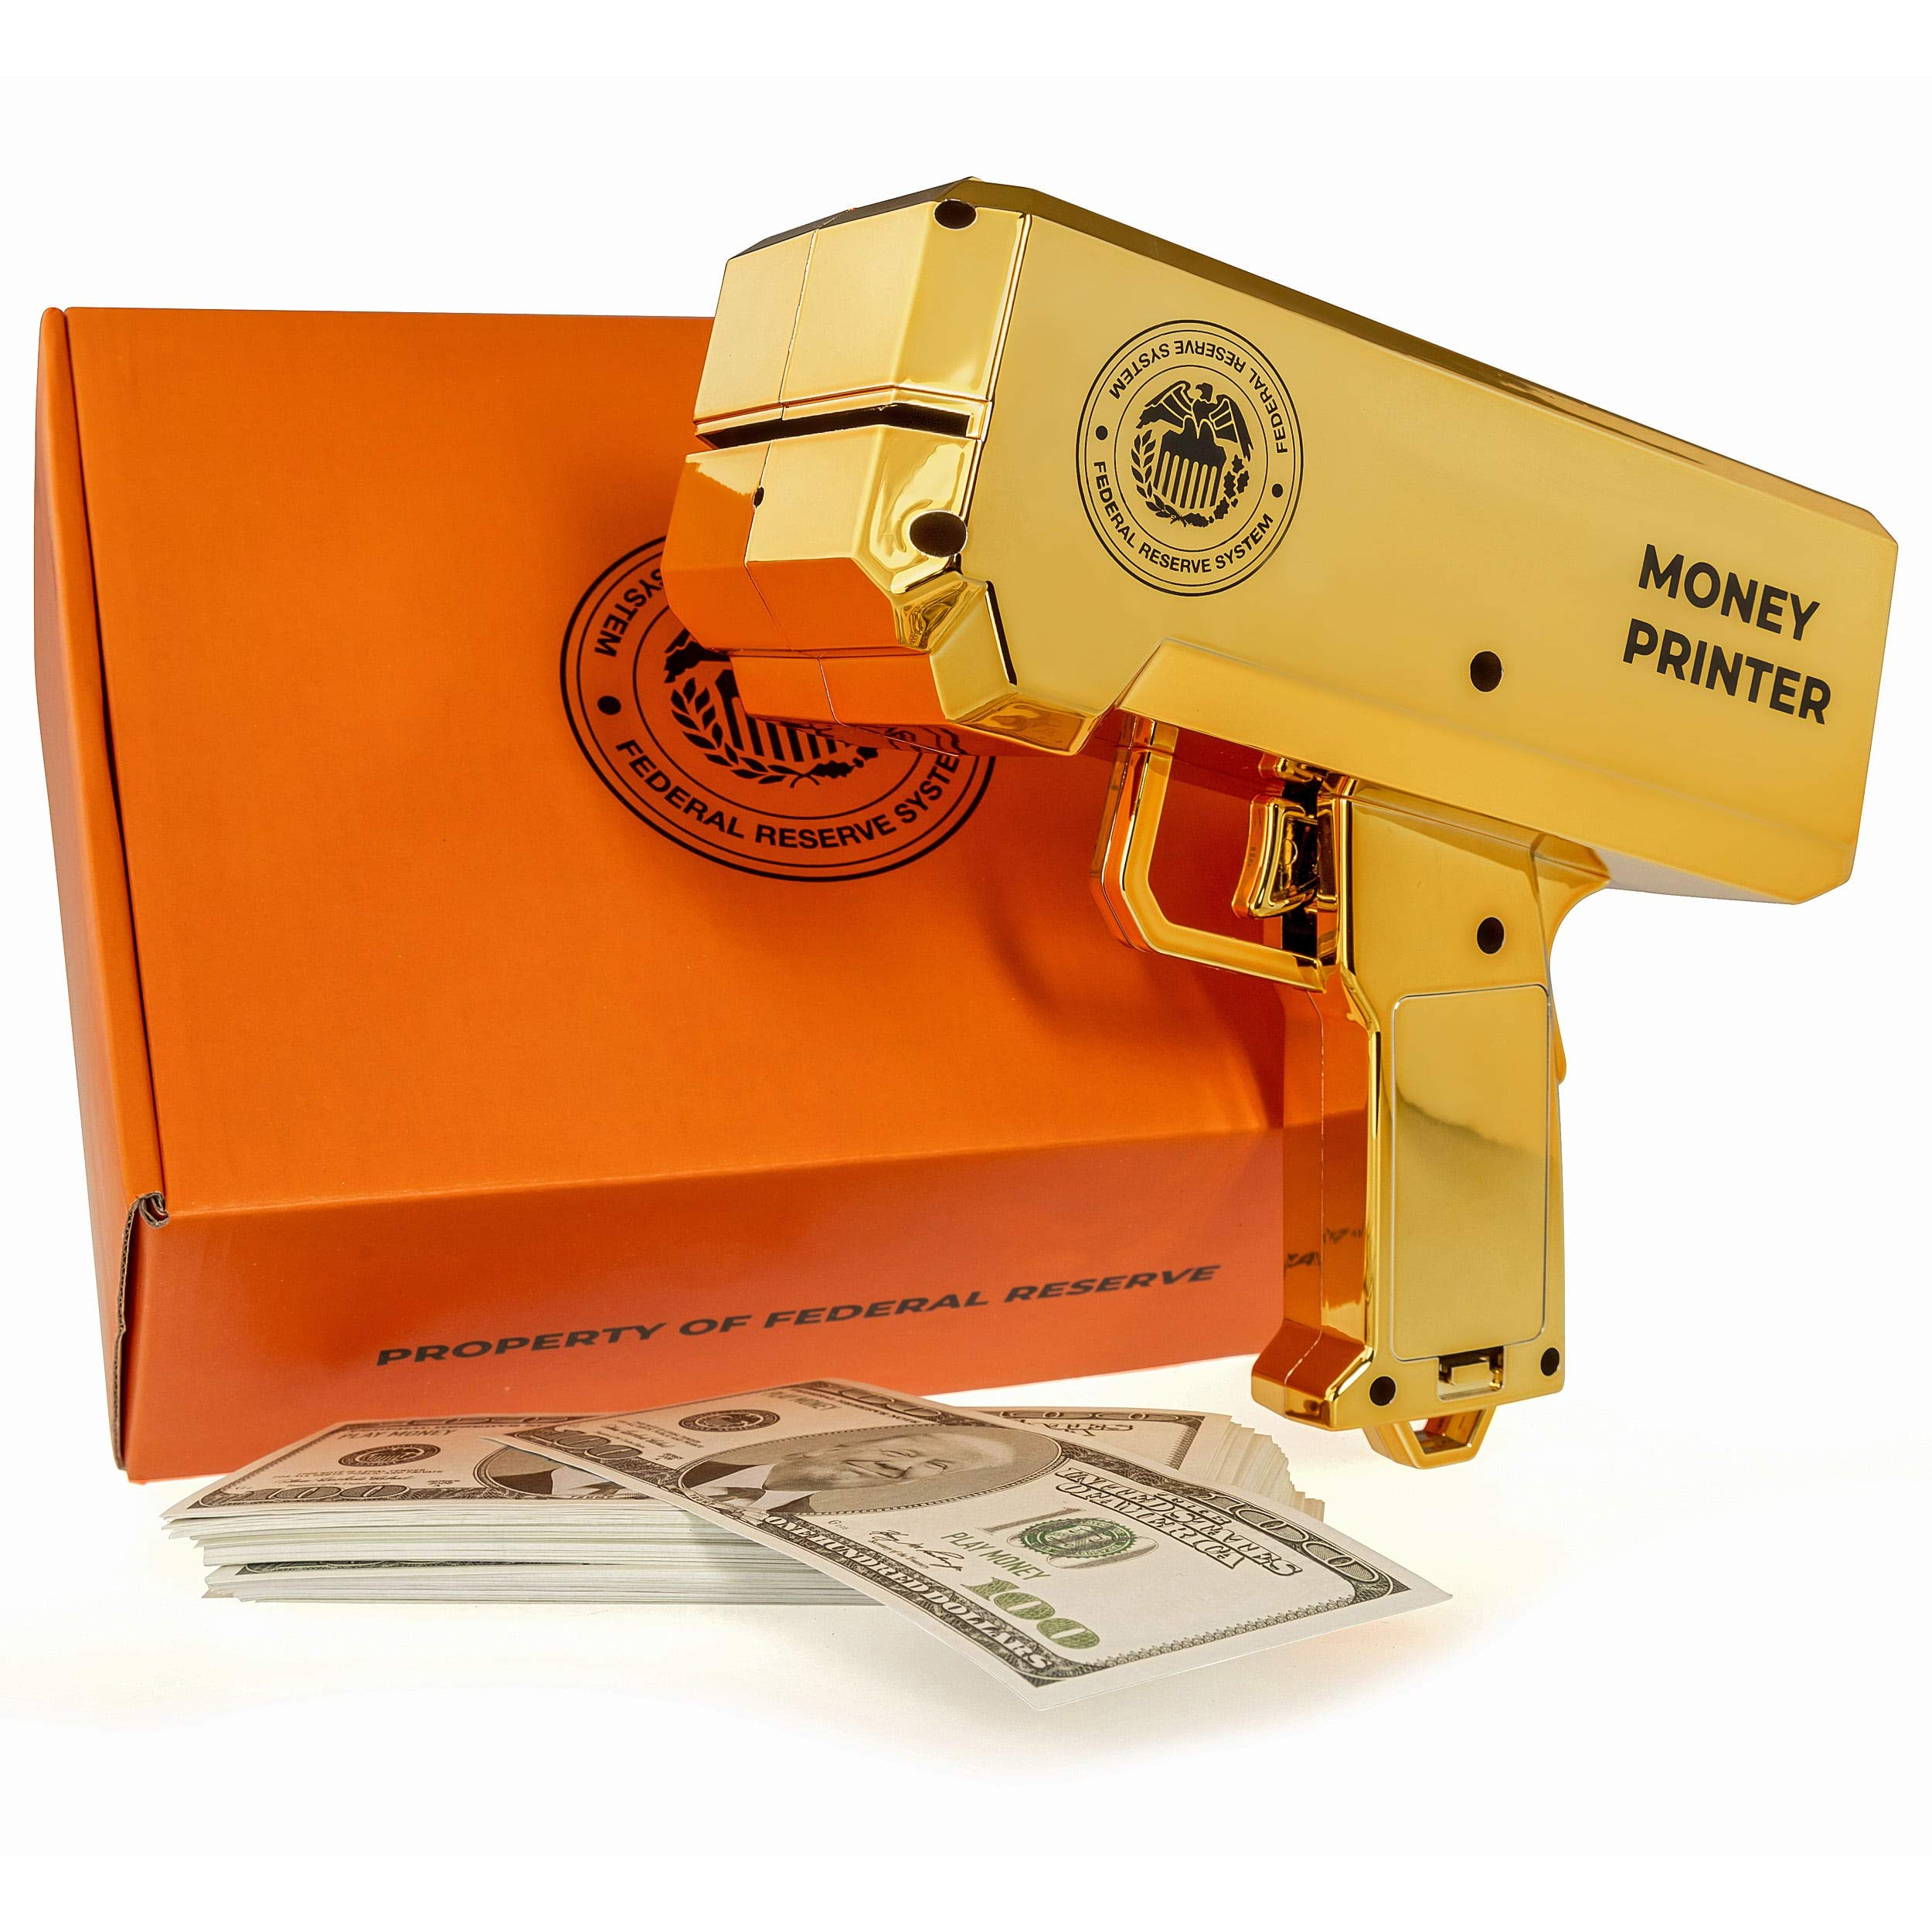 The Money Printer - Golden Money Gun with Trump Bank Notes - Shoot Prop Counterfeit Cash and Fake 100 Dollar Bills - Make It Rain Novelty Party Toy